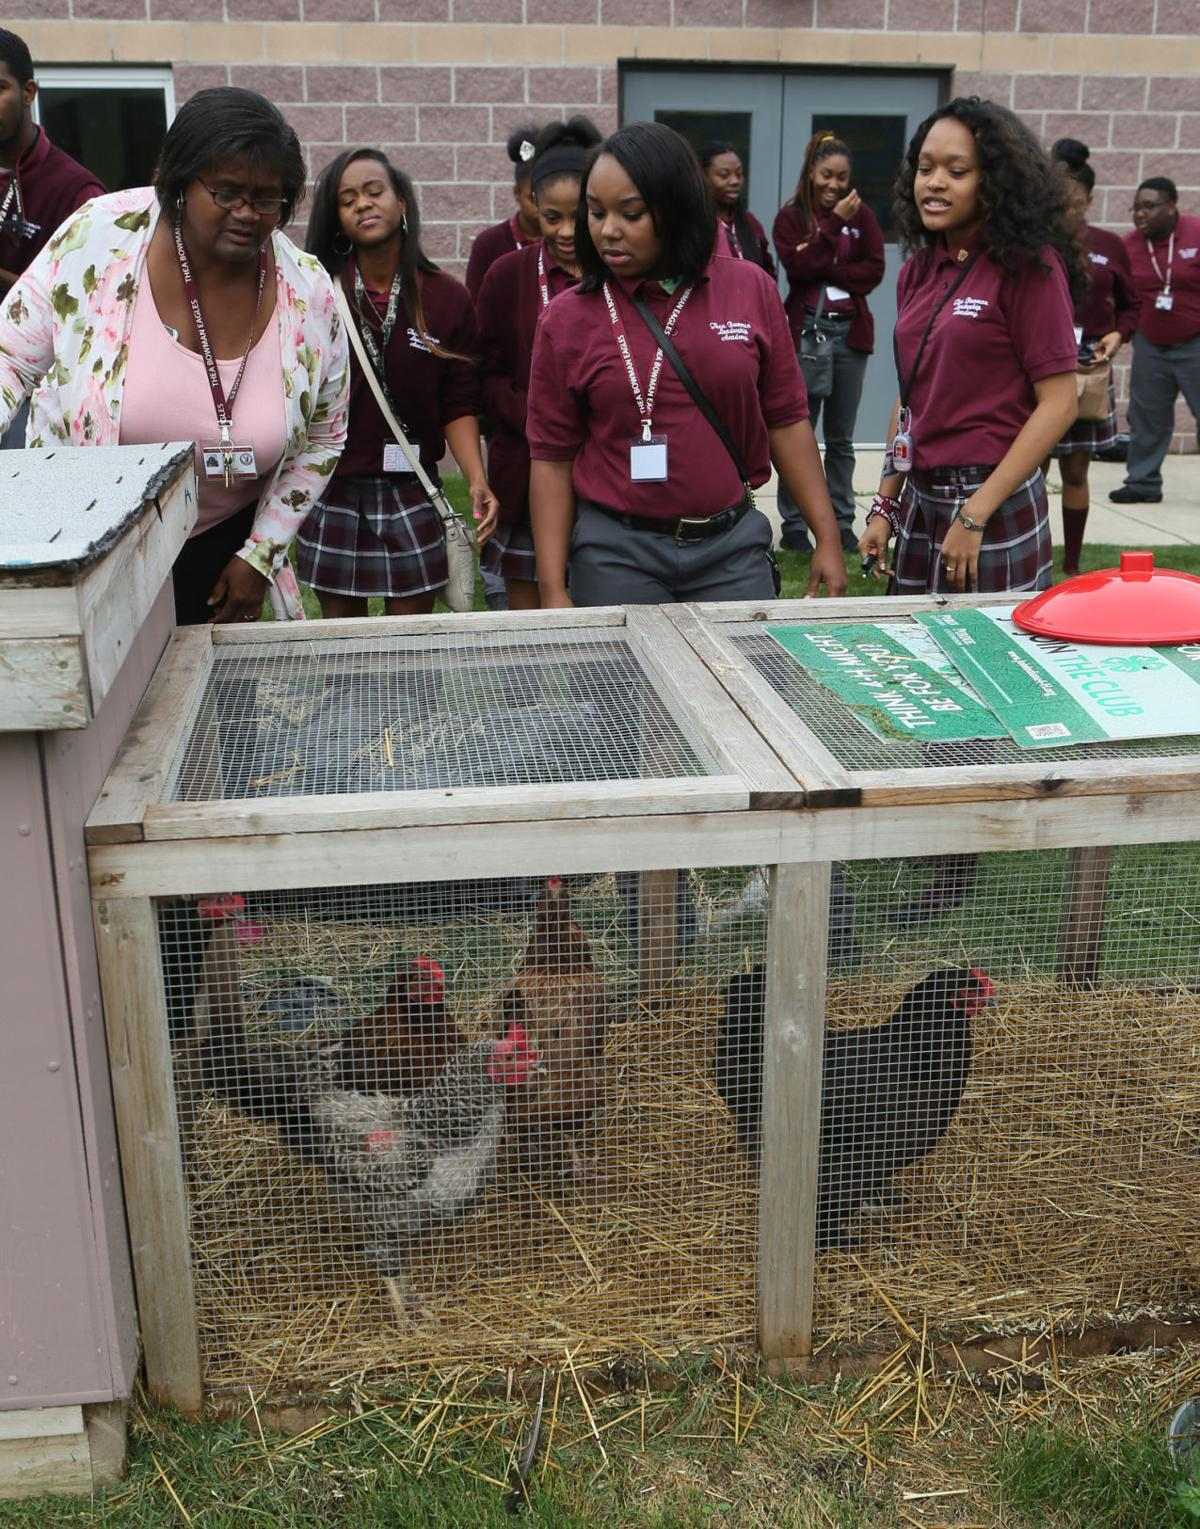 The students at Thea Bowman are working on an urban farm. They are raising chickens and eggs.